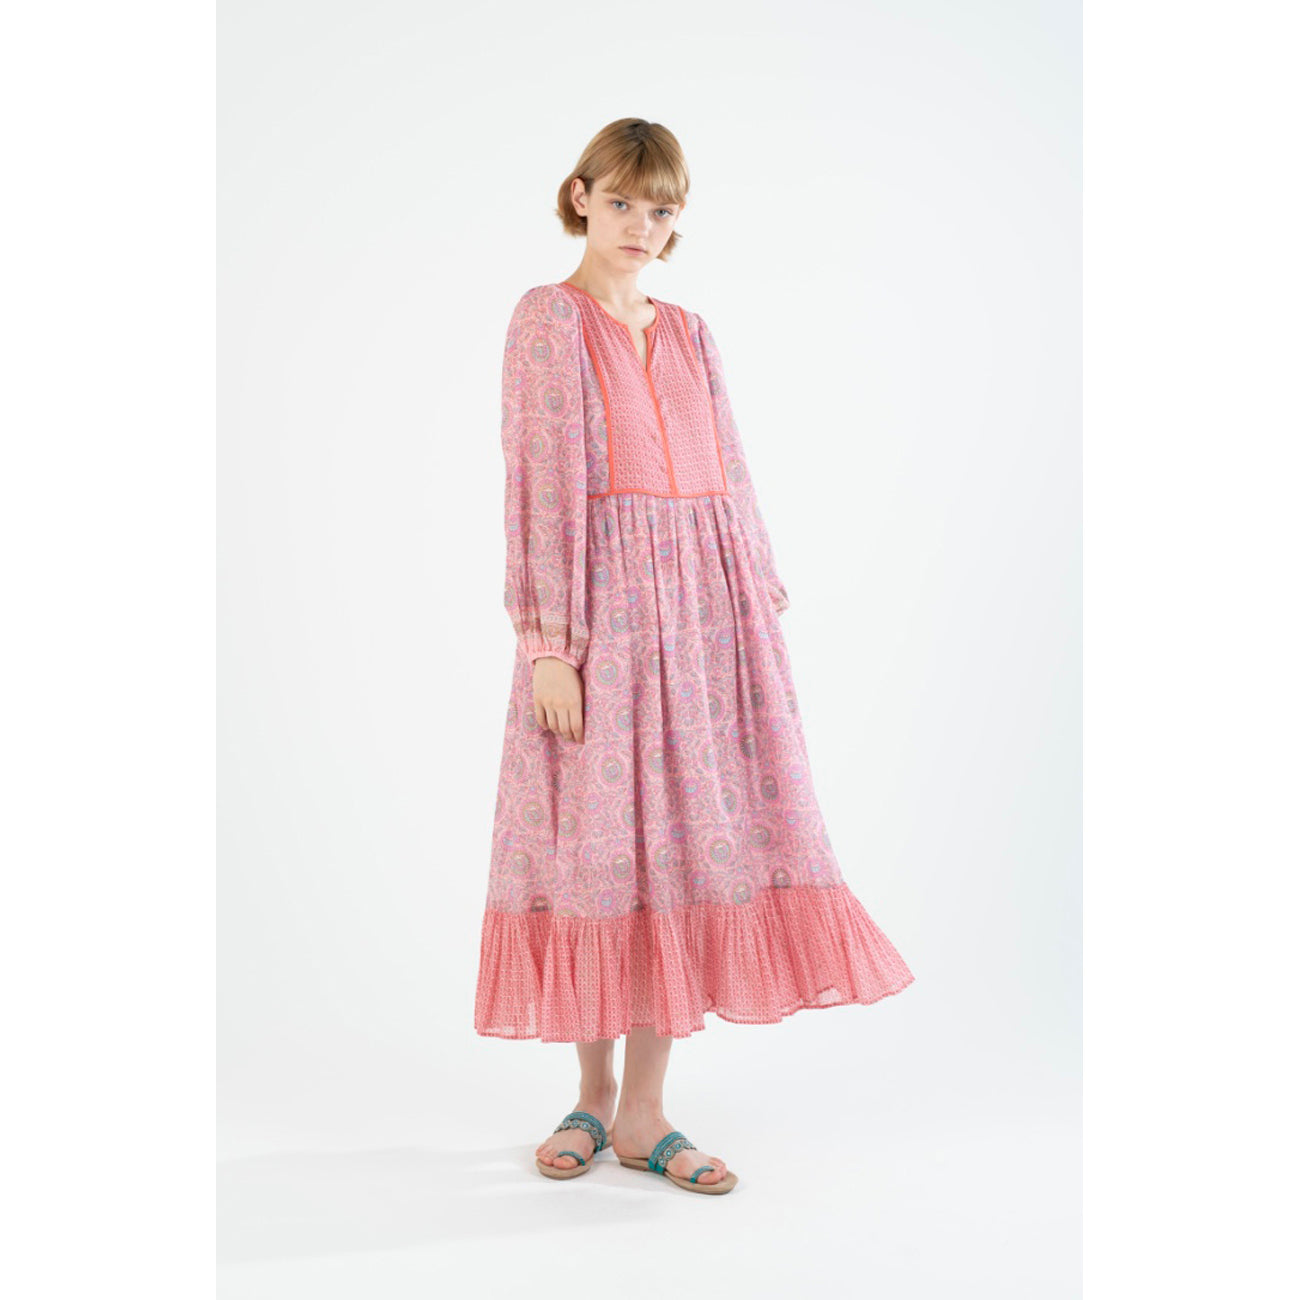 ne Quittez pas Ethnic Print Frilled Dress in Pink